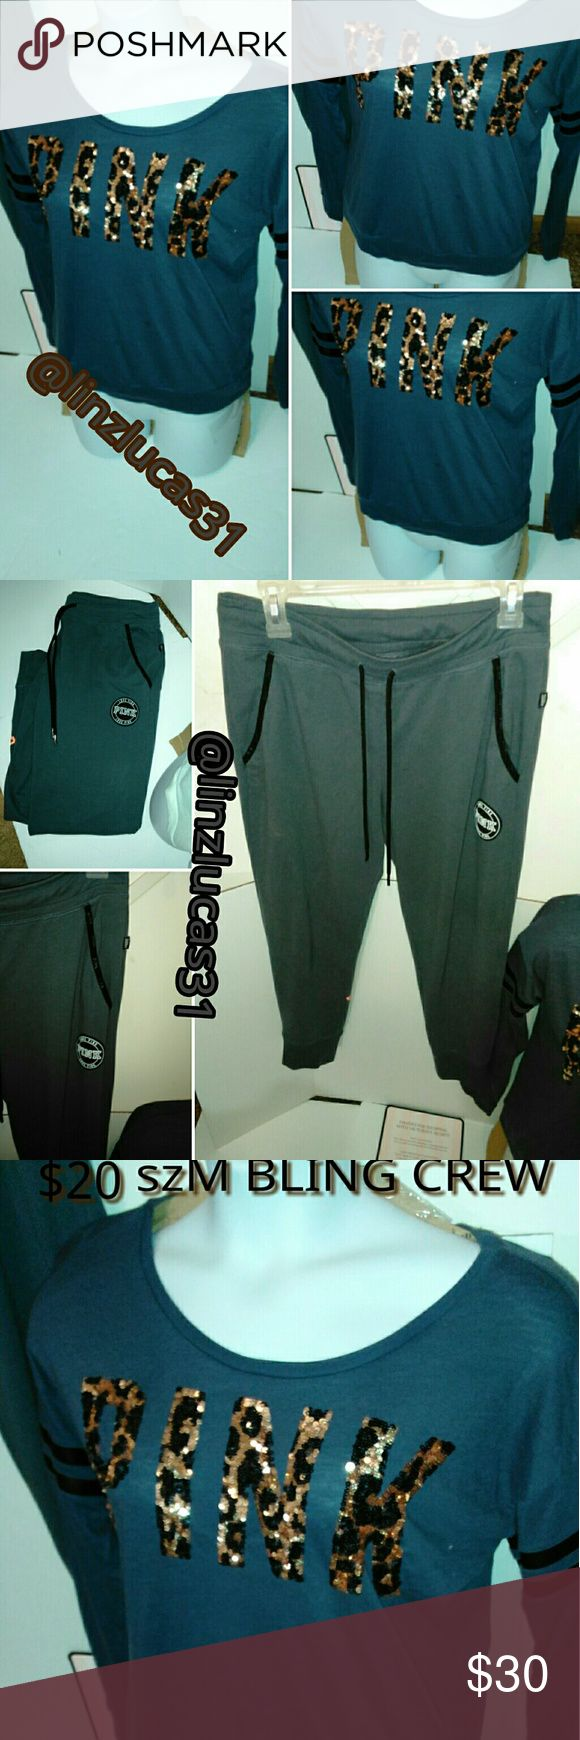 VSPINK szM Bling crew& gym pants, New SzM VSPINK bling crew, New, and VSPINK szM gym pants NEW, very cute outfit, will sell separately, will do pants for$22. PINK Victoria's Secret Other